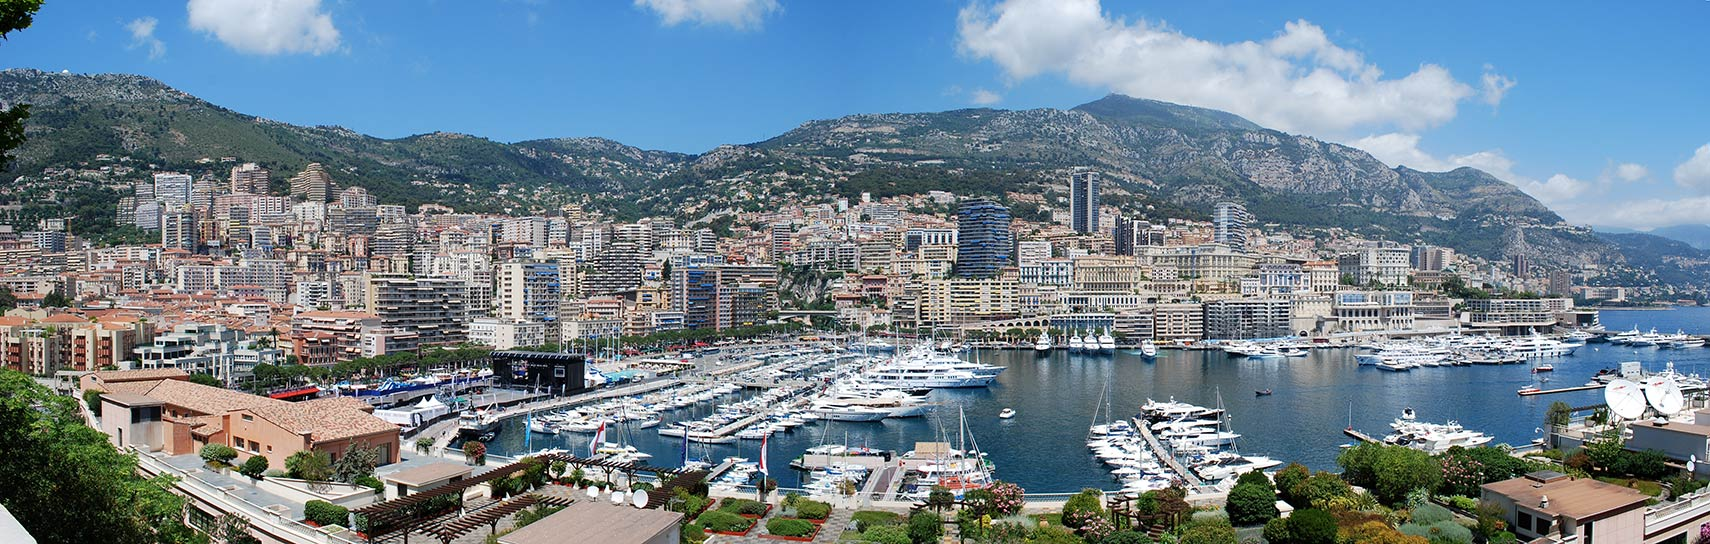 La Condamine with Port Hercules, Monaco